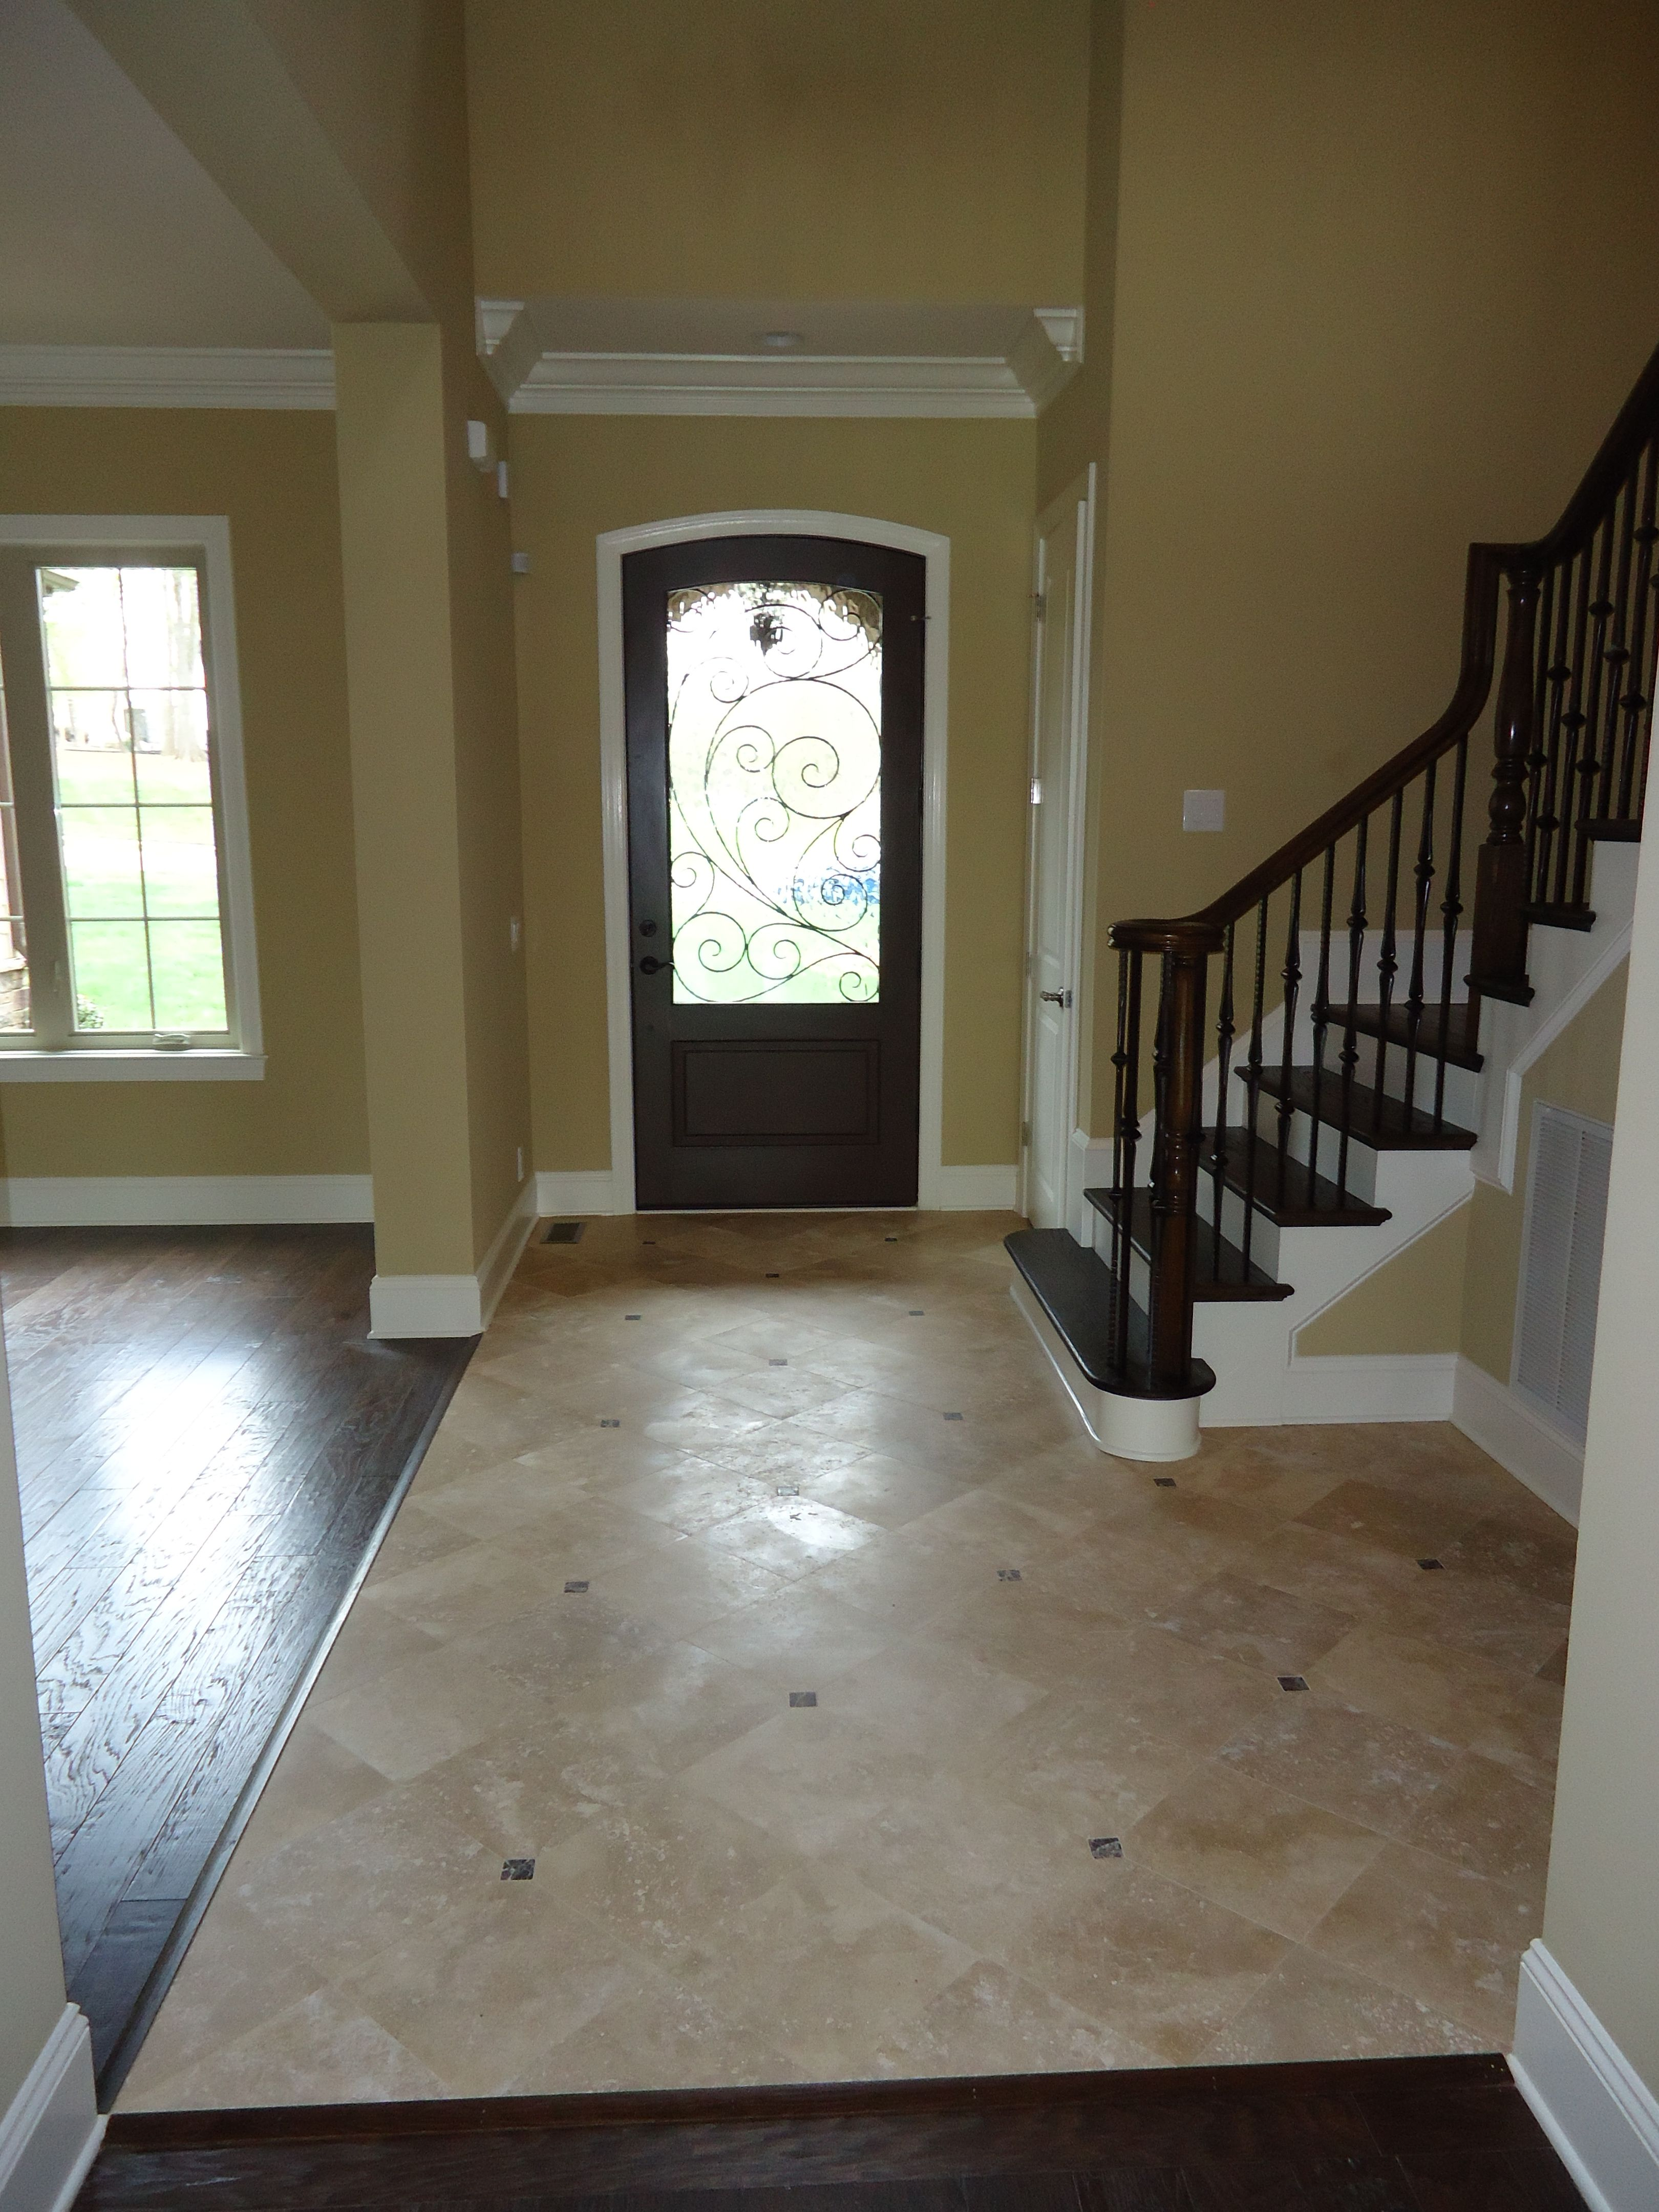 Foyer Tile Or Wood : The saddlebrook foyer with travertine flooring and wrought